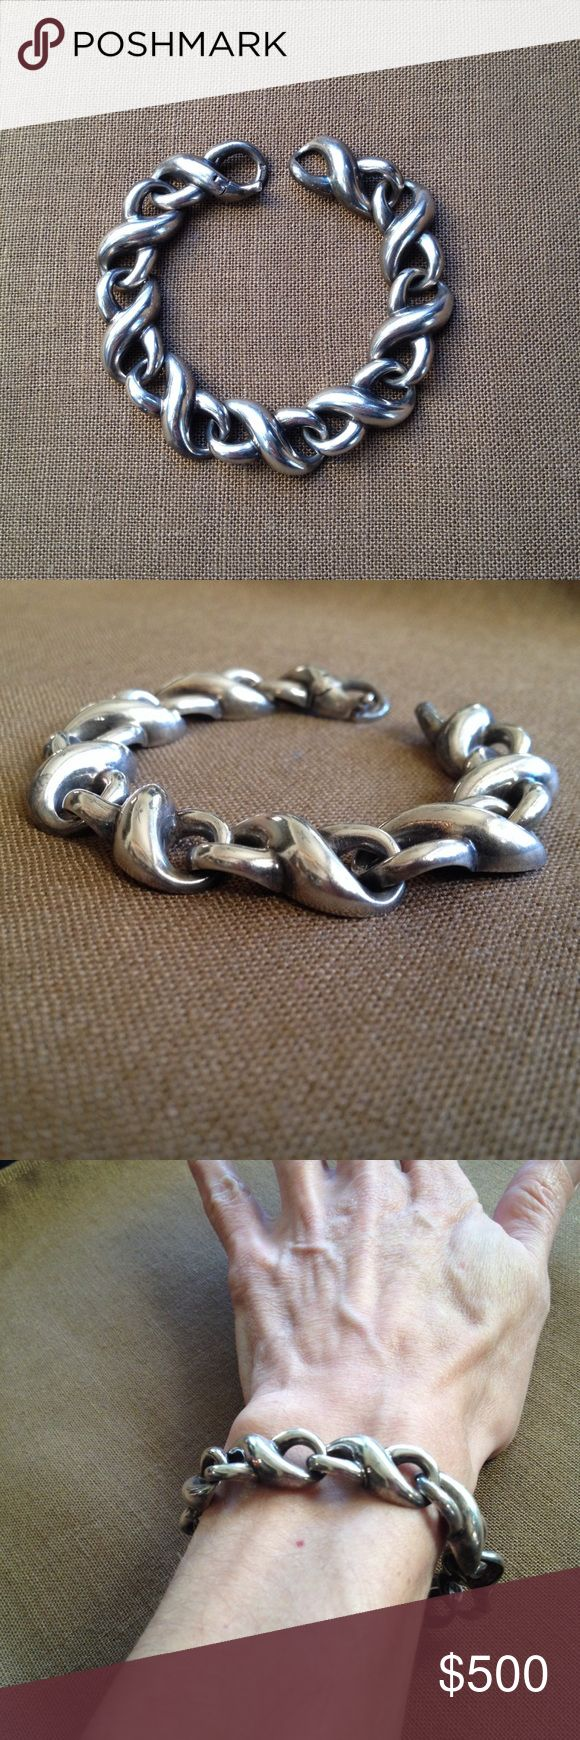 """Vintage Sterling Silver Krypell Bracelet 1970's, Charles Krypell, modernist, chain link bracelet in Sterling Silver. Mod and sculptural design featuring big and beautifully crafted infinity swirls. Rare piece, tremendous really because it reflects the designer's roots as a sculptor from Pratt in NY. Please note this is a vintage piece in pre-loved condition showing some very minor surface wear. Very cool   clasp works perfectly. 32g. 7&1/4"""" long. Each link appx 1"""" X 1/2"""". Stamped with…"""